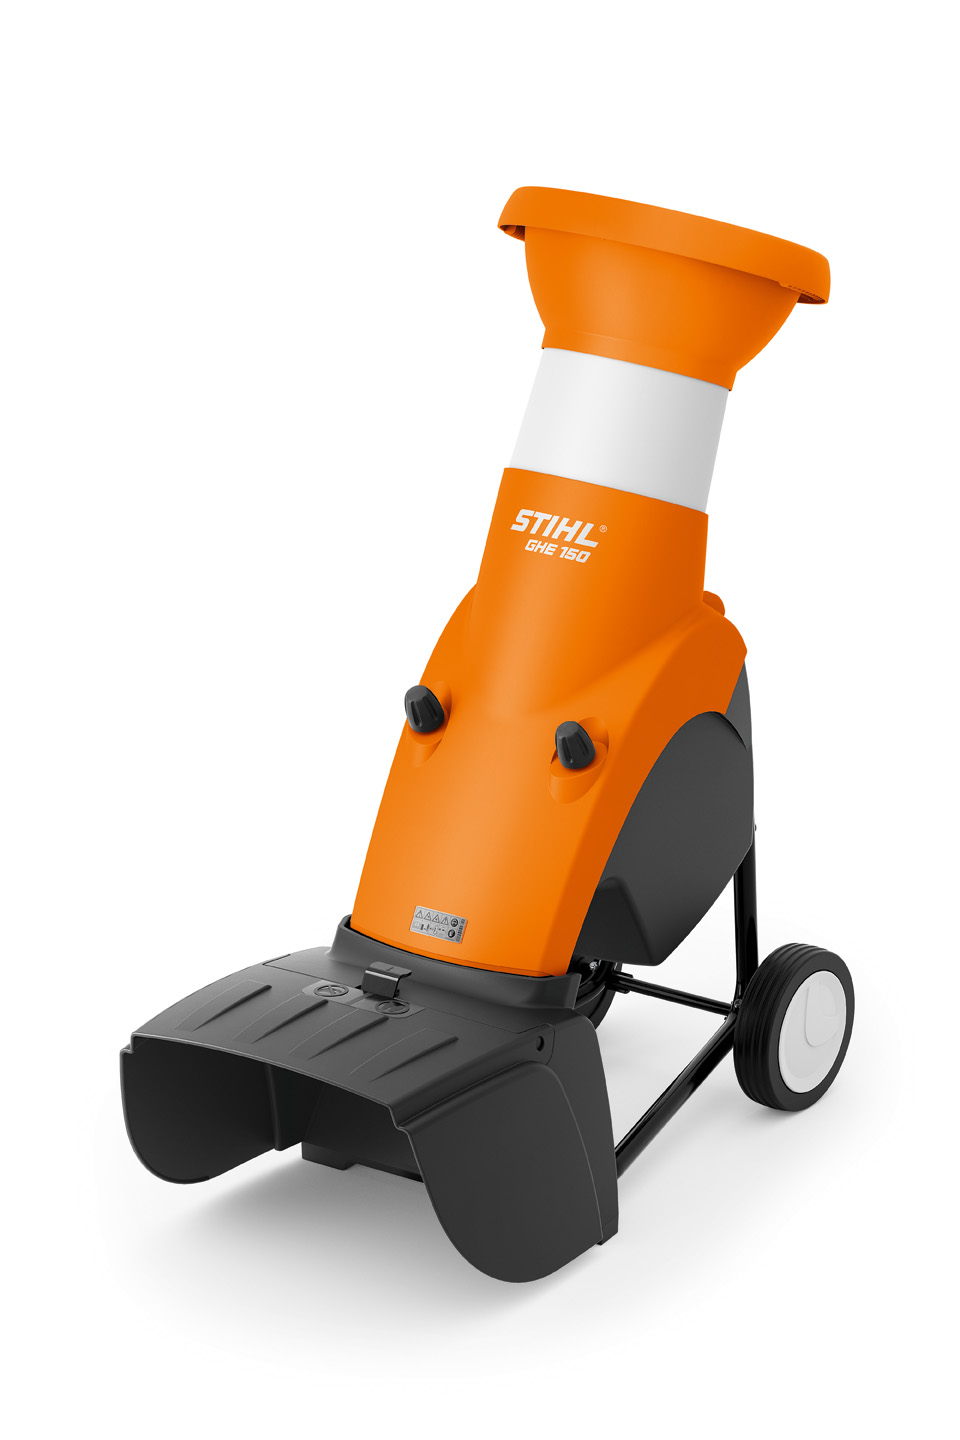 GHE 150 - ELECTRIC GARDEN CHIPPER WITH CLOVERLEAF OPENING